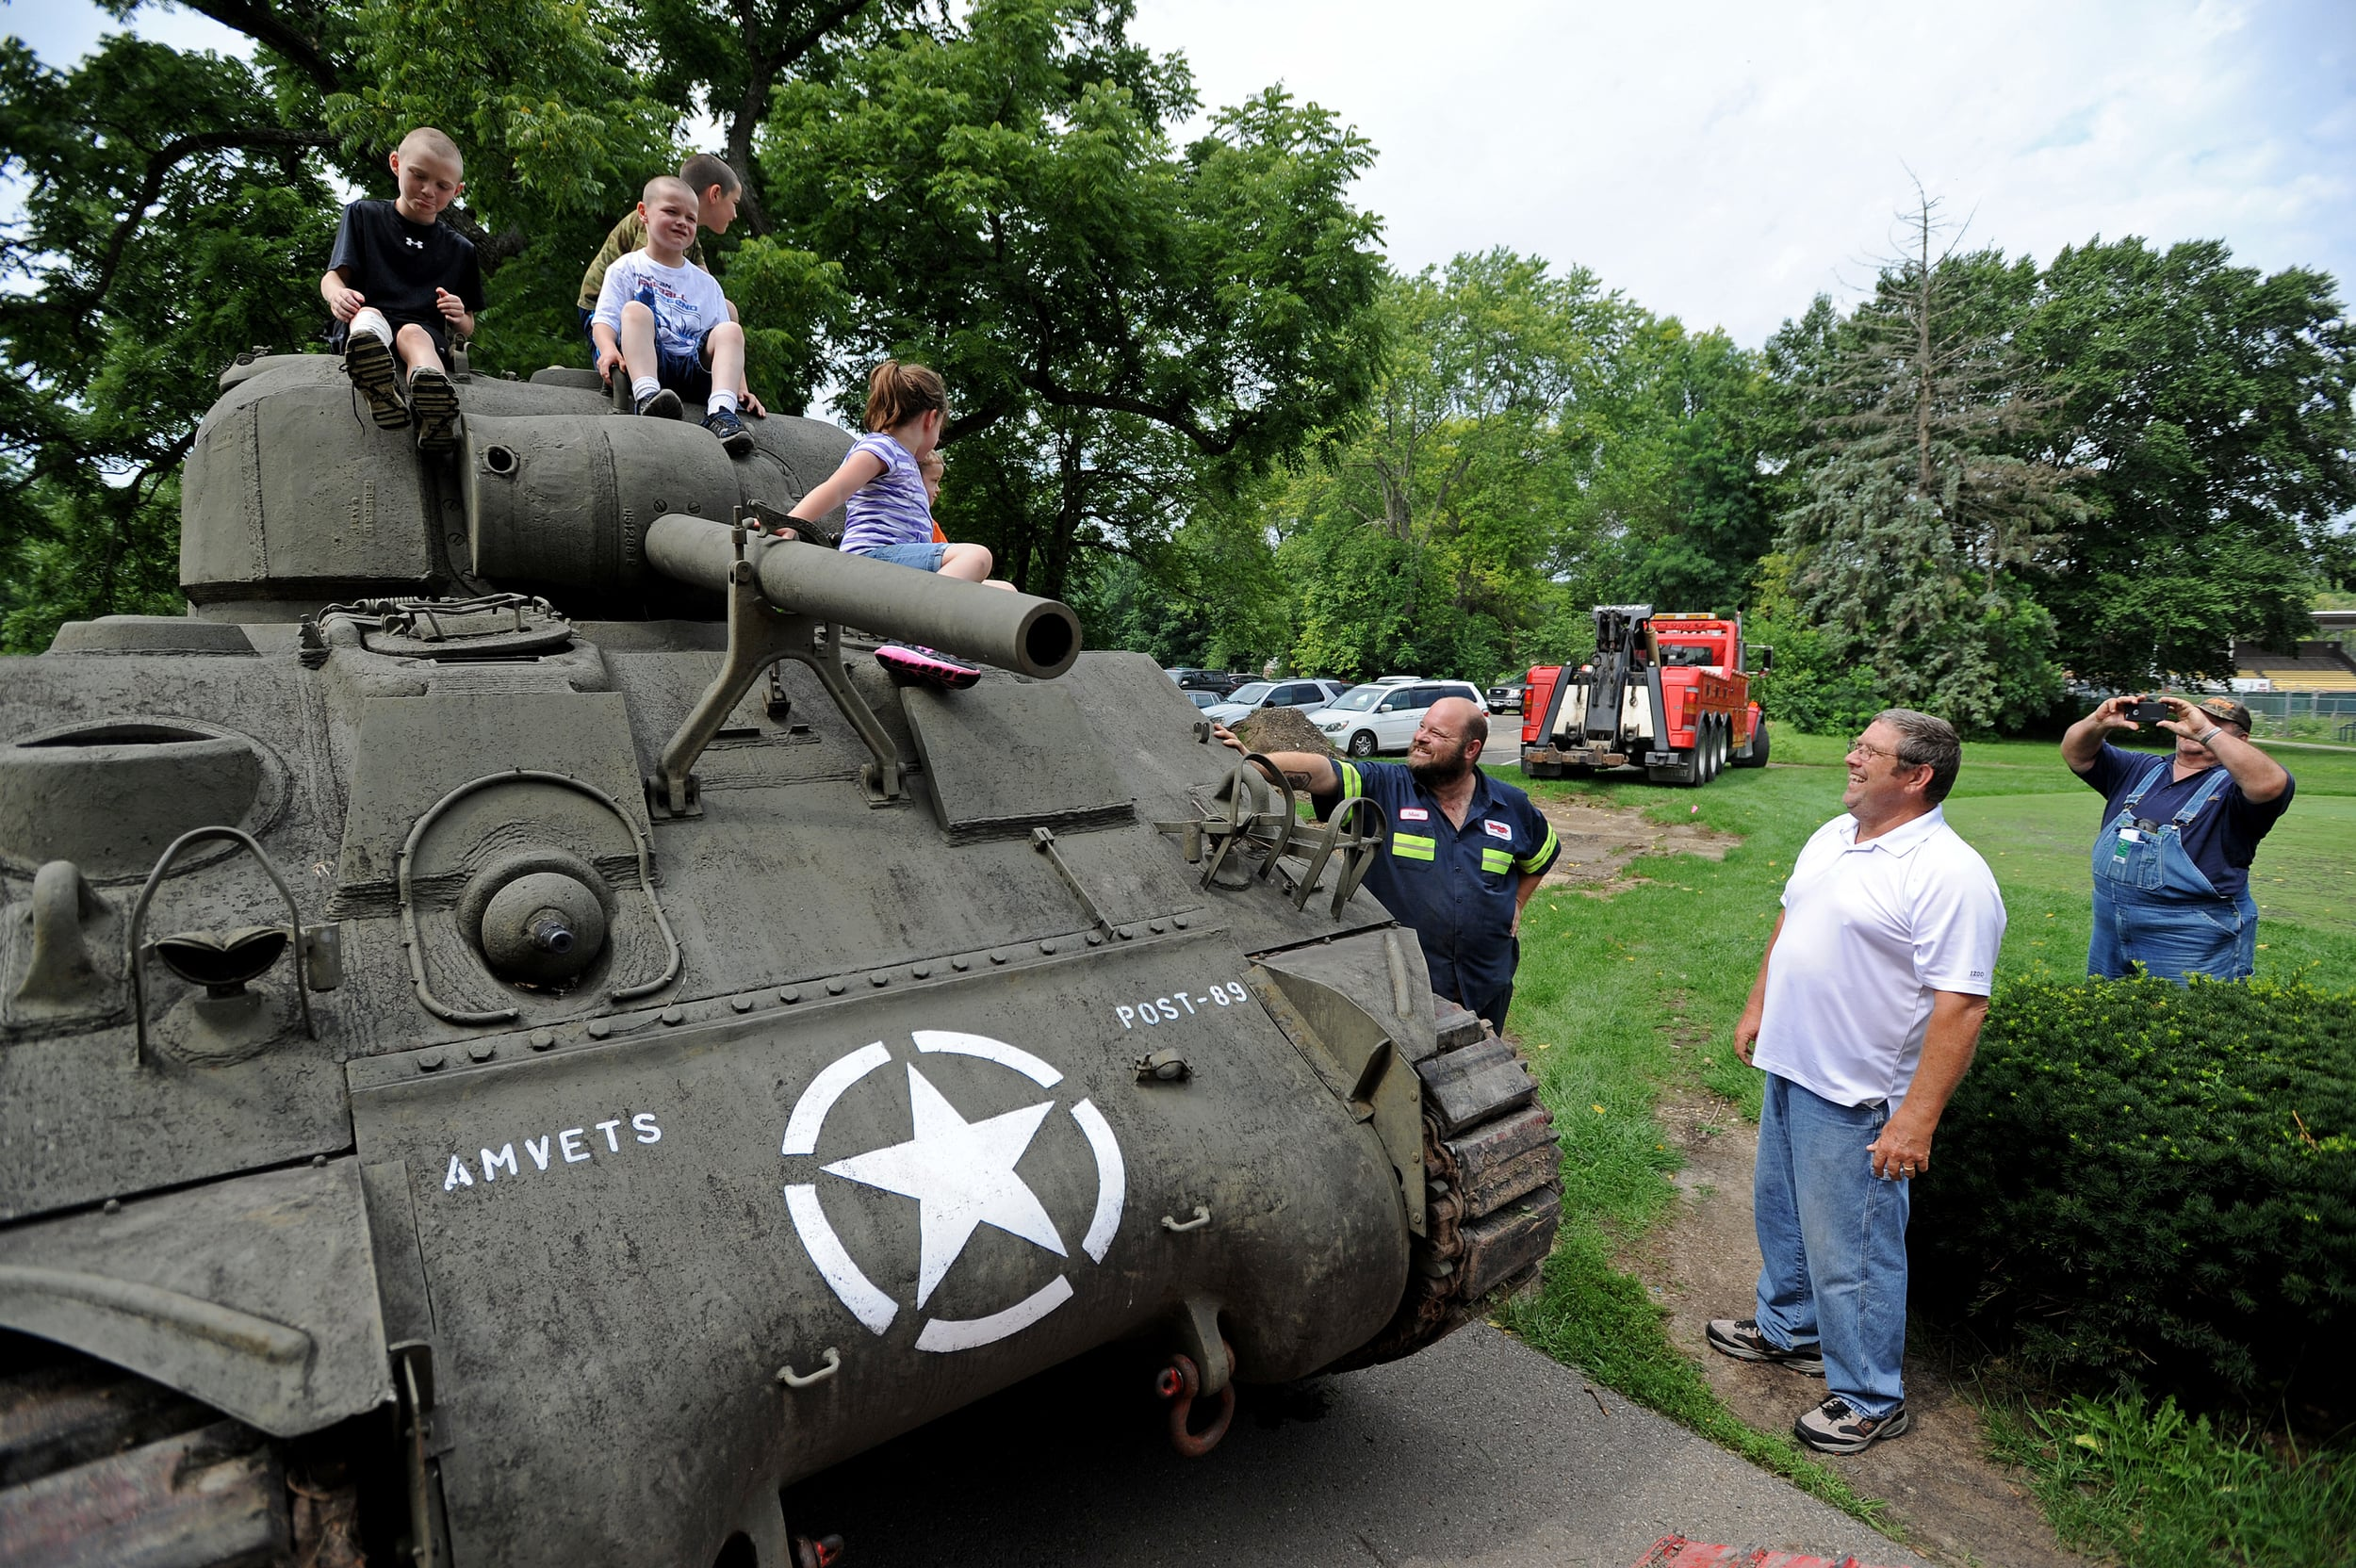 A WWII tank has found a new home at the Chillicothe Veterans Affairs Forrest E. Everhart Memorial Golf Course on Friday. The Veterans in Transition, Inc., in conjunction with the Military Veterans Resource Center of Ohio filed the necessary paperwork to get the tank, previous located at the Amvets Post 89 in Columbus, brought down to be placed next to the Starter House on the golf course.